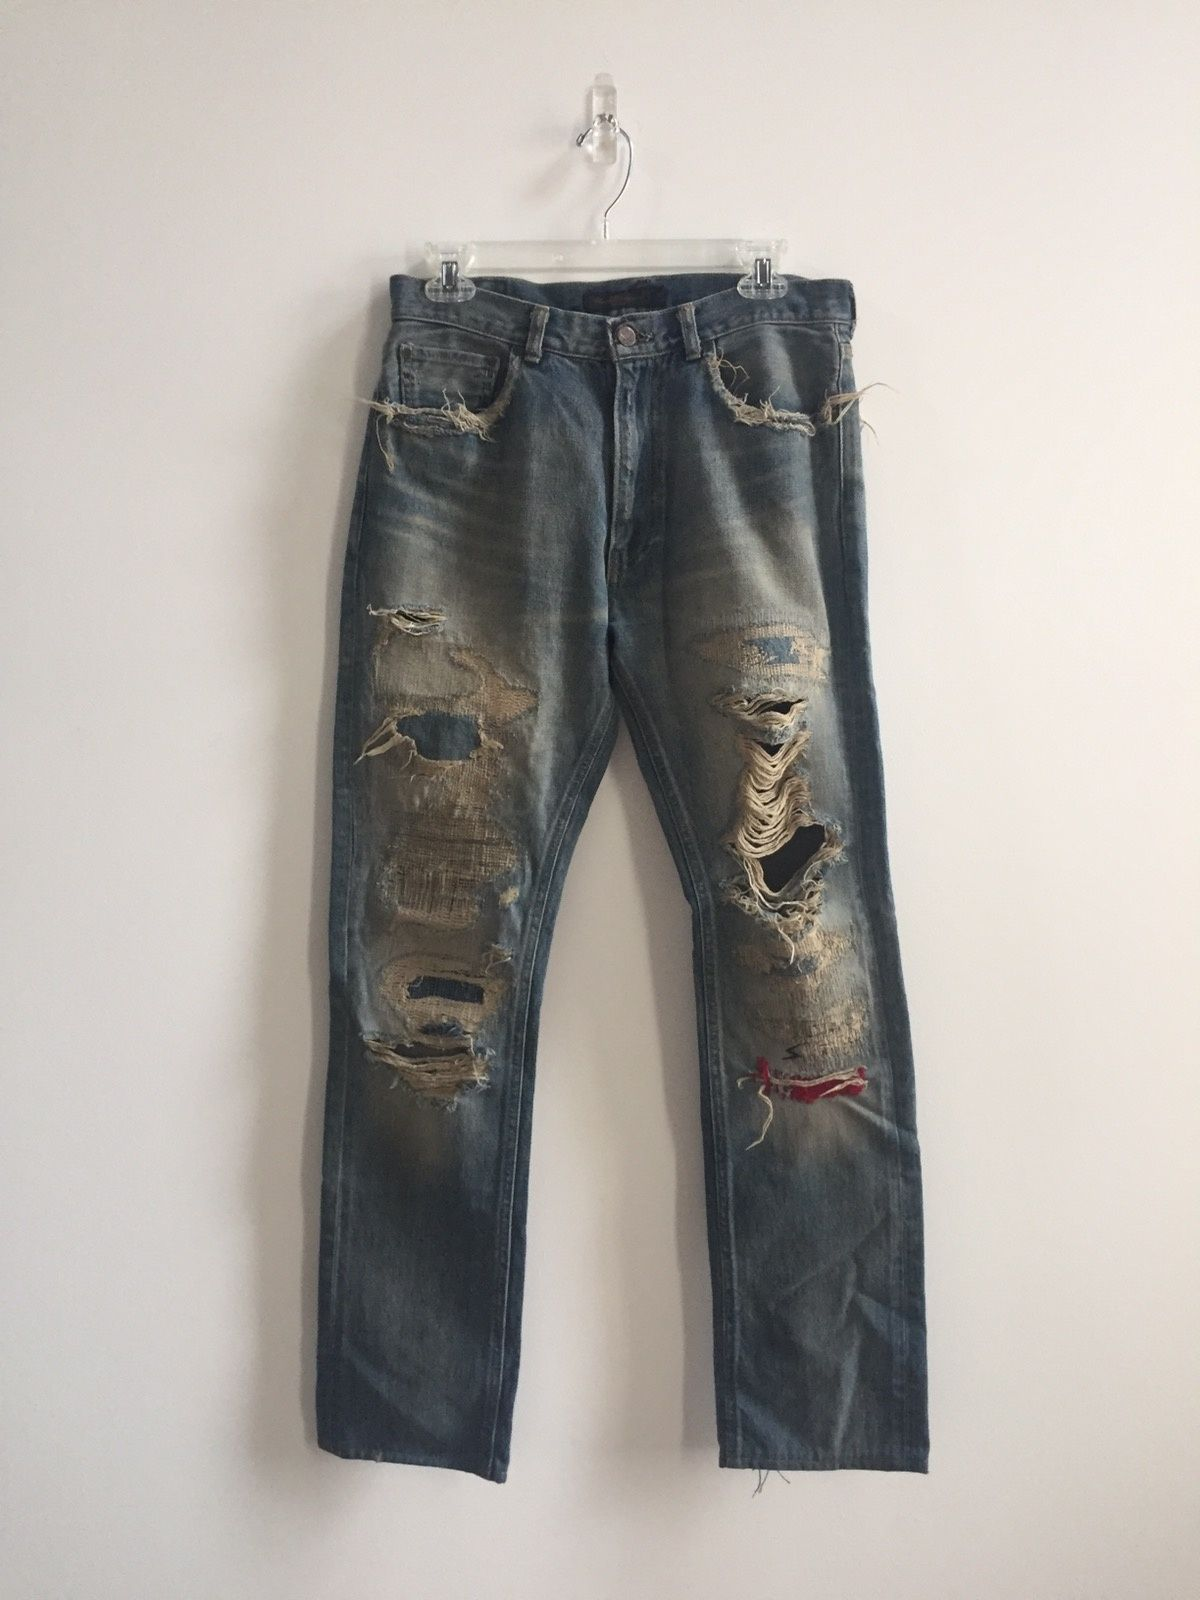 c6ef2101f4f5c Buy Undercover AW04 68 Jeans